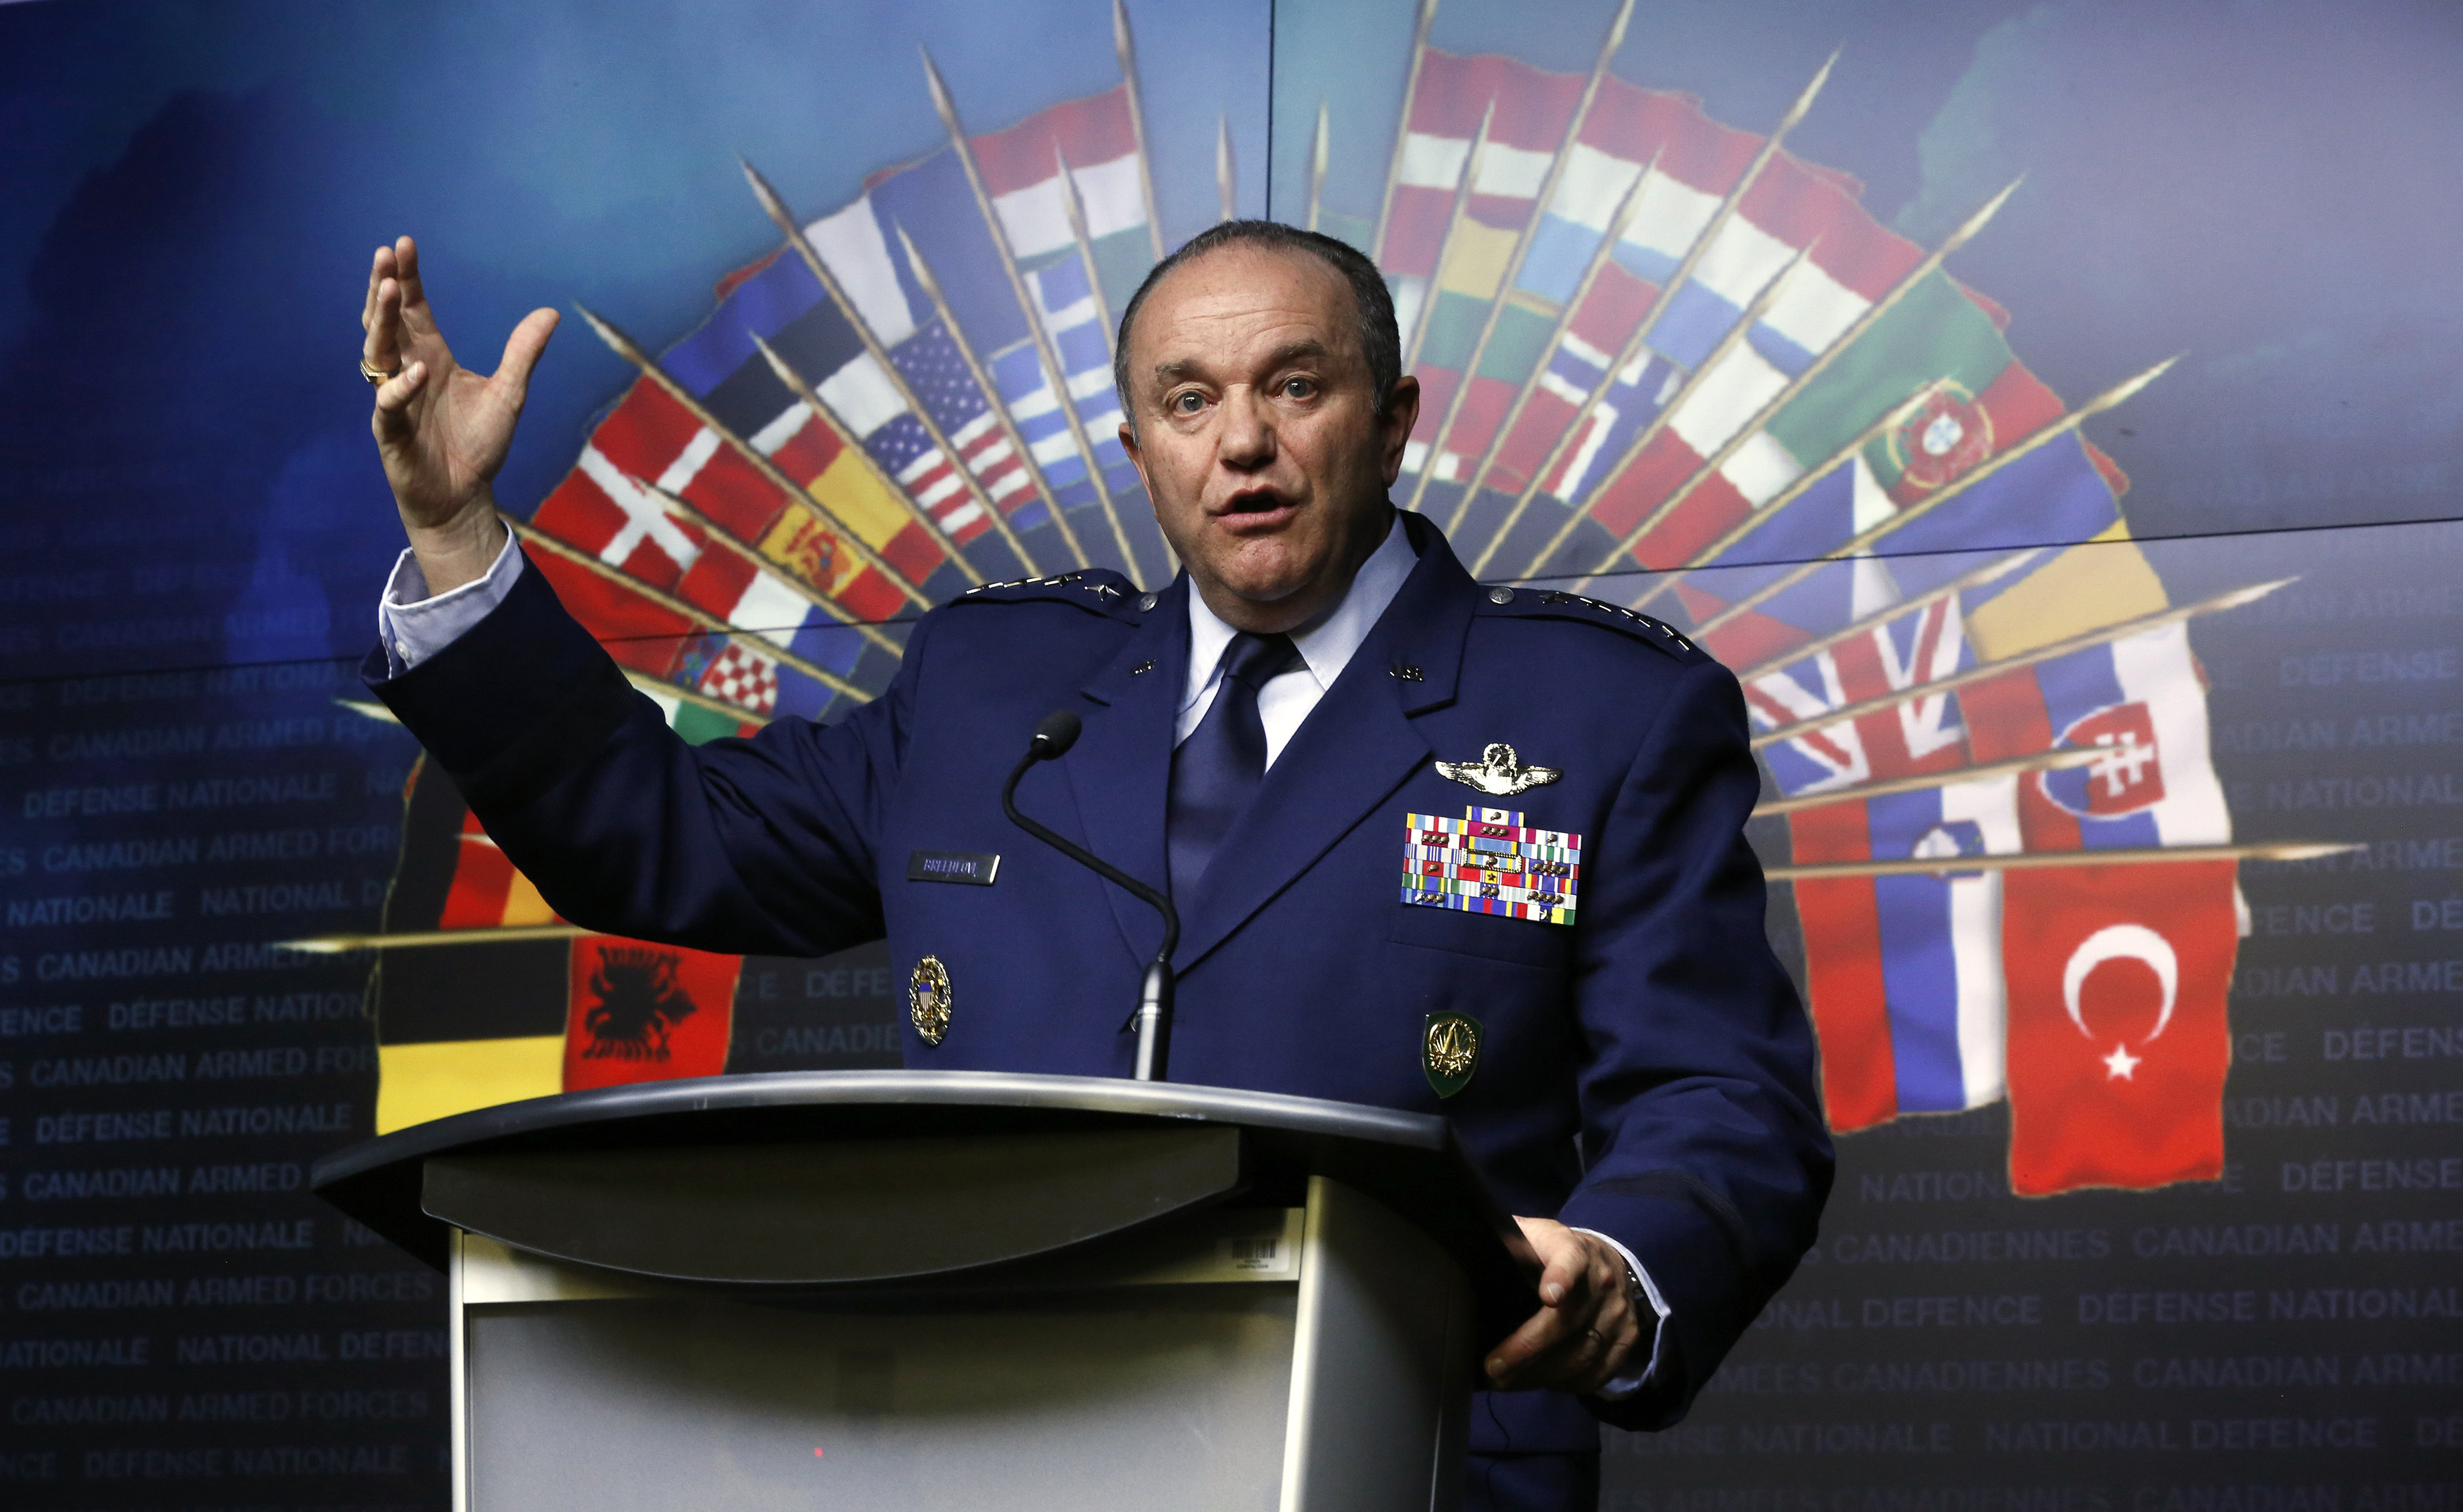 NATO Supreme Allied Commander Europe and Commander of the U.S. European Command General Philip Breedlove speaks during a news conference at the National Defence headquarters in Ottawa May 6, 2014. NATO will have to consider permanently stationing troops in eastern Europe as a result of the increased tension between Russia and Ukraine, the alliance's top military commander Breedlove said on Tuesday. REUTERS/Chris Wattie (CANADA - Tags: POLITICS MILITARY) - RTR3O270